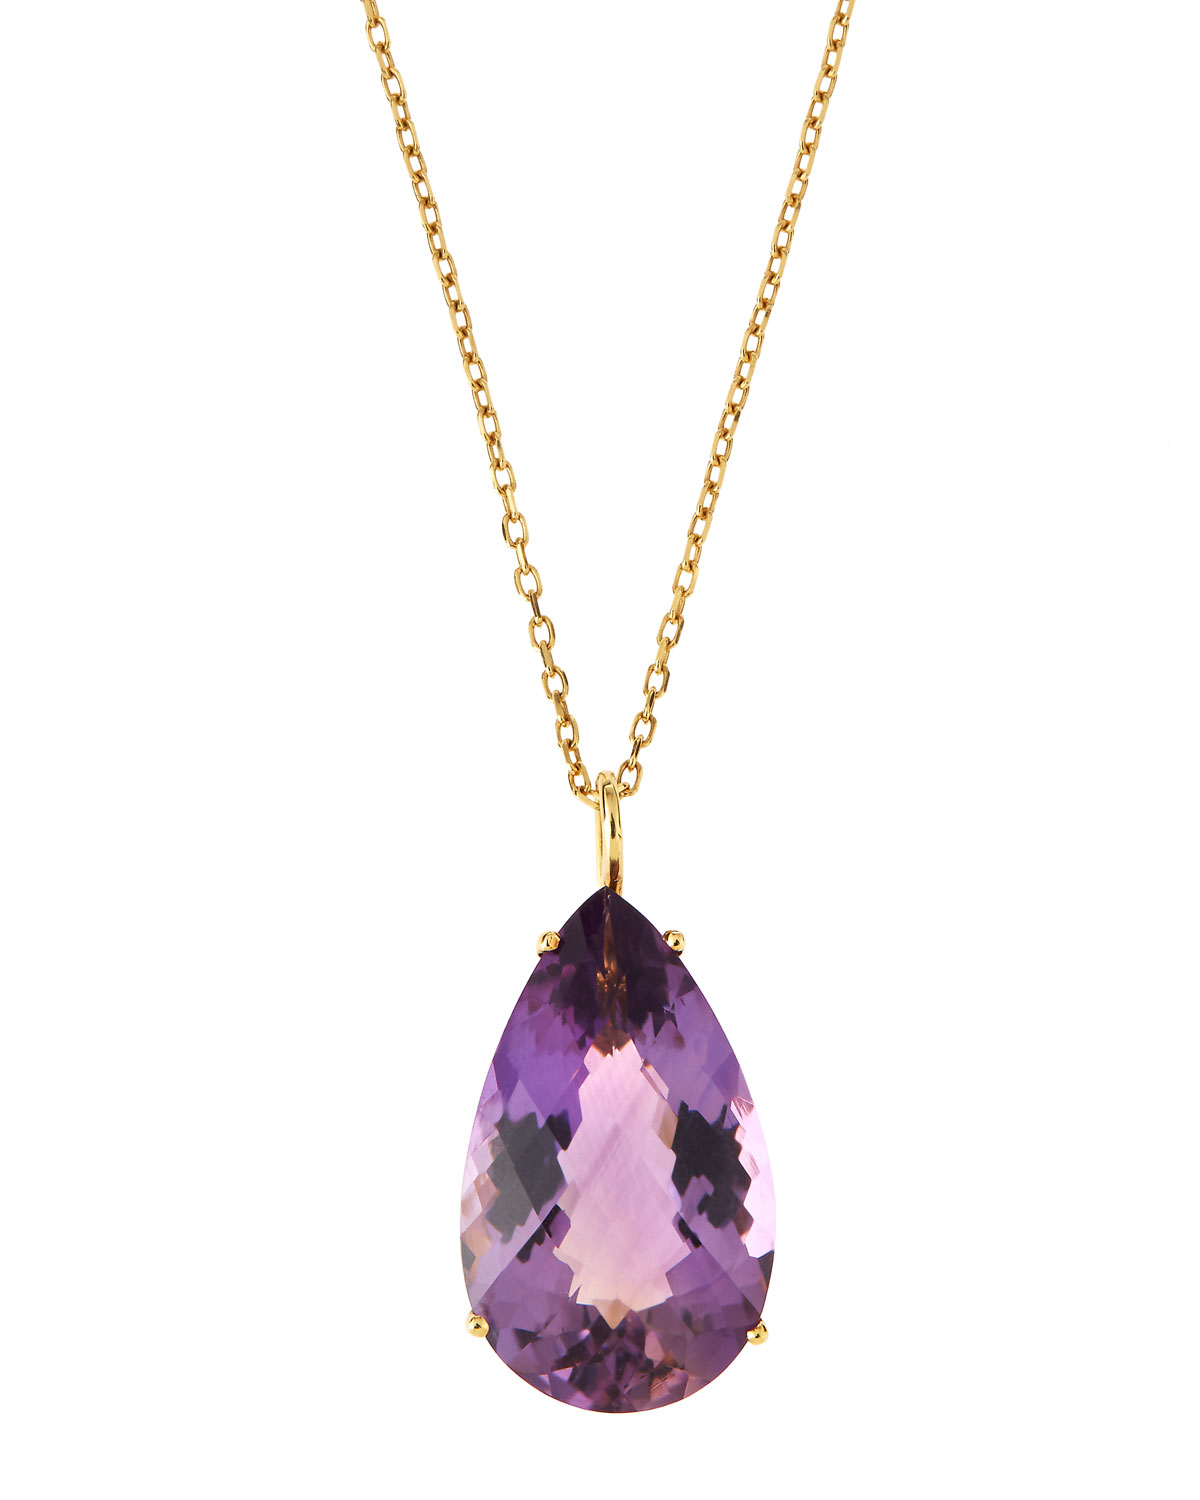 Roberto Coin 18k Amethyst & Diamond Teardrop Pendant Necklace I1PbMsjMpF